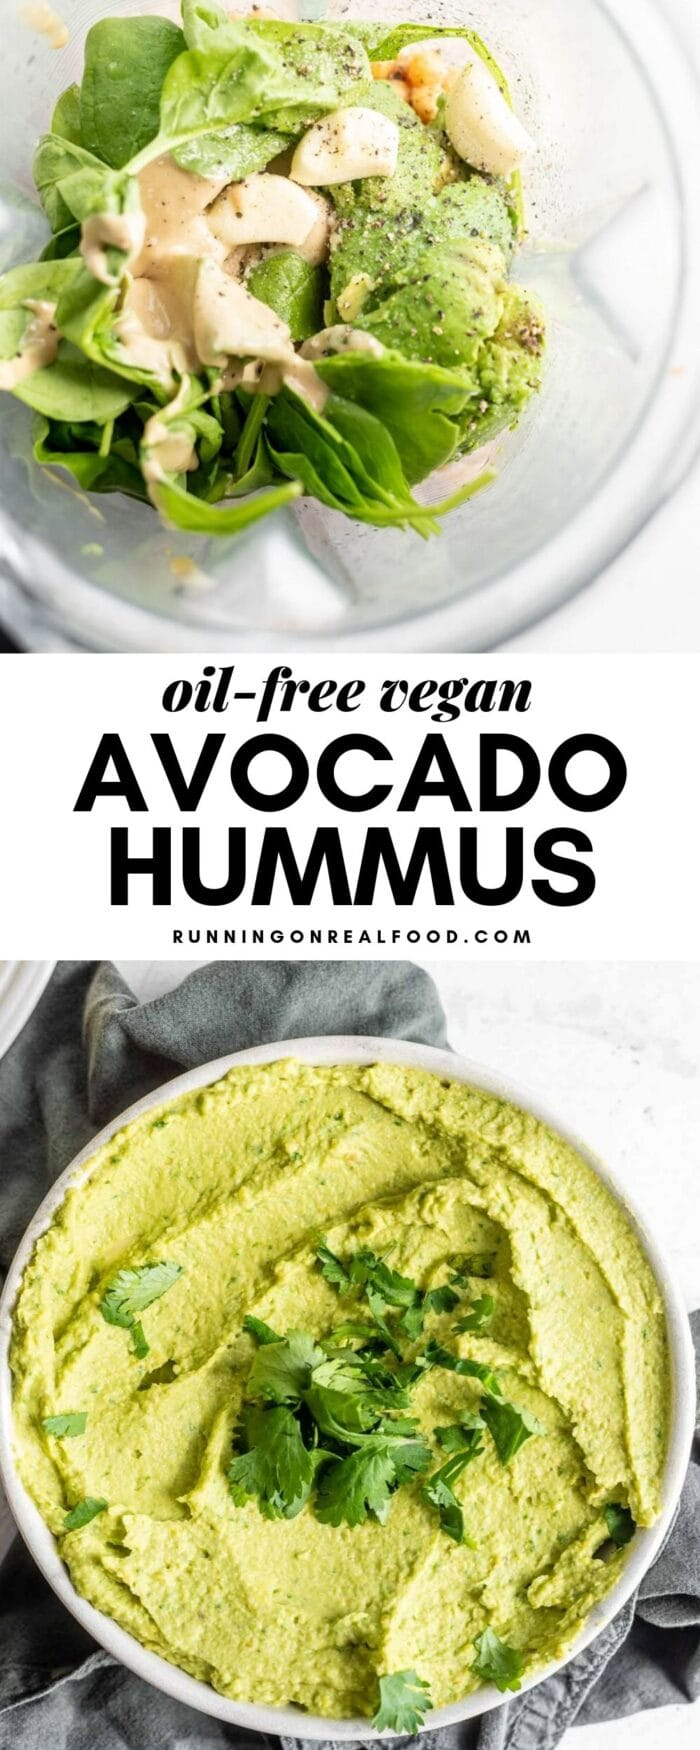 Bowl of avocado hummus with a text overlay for Pinterest.